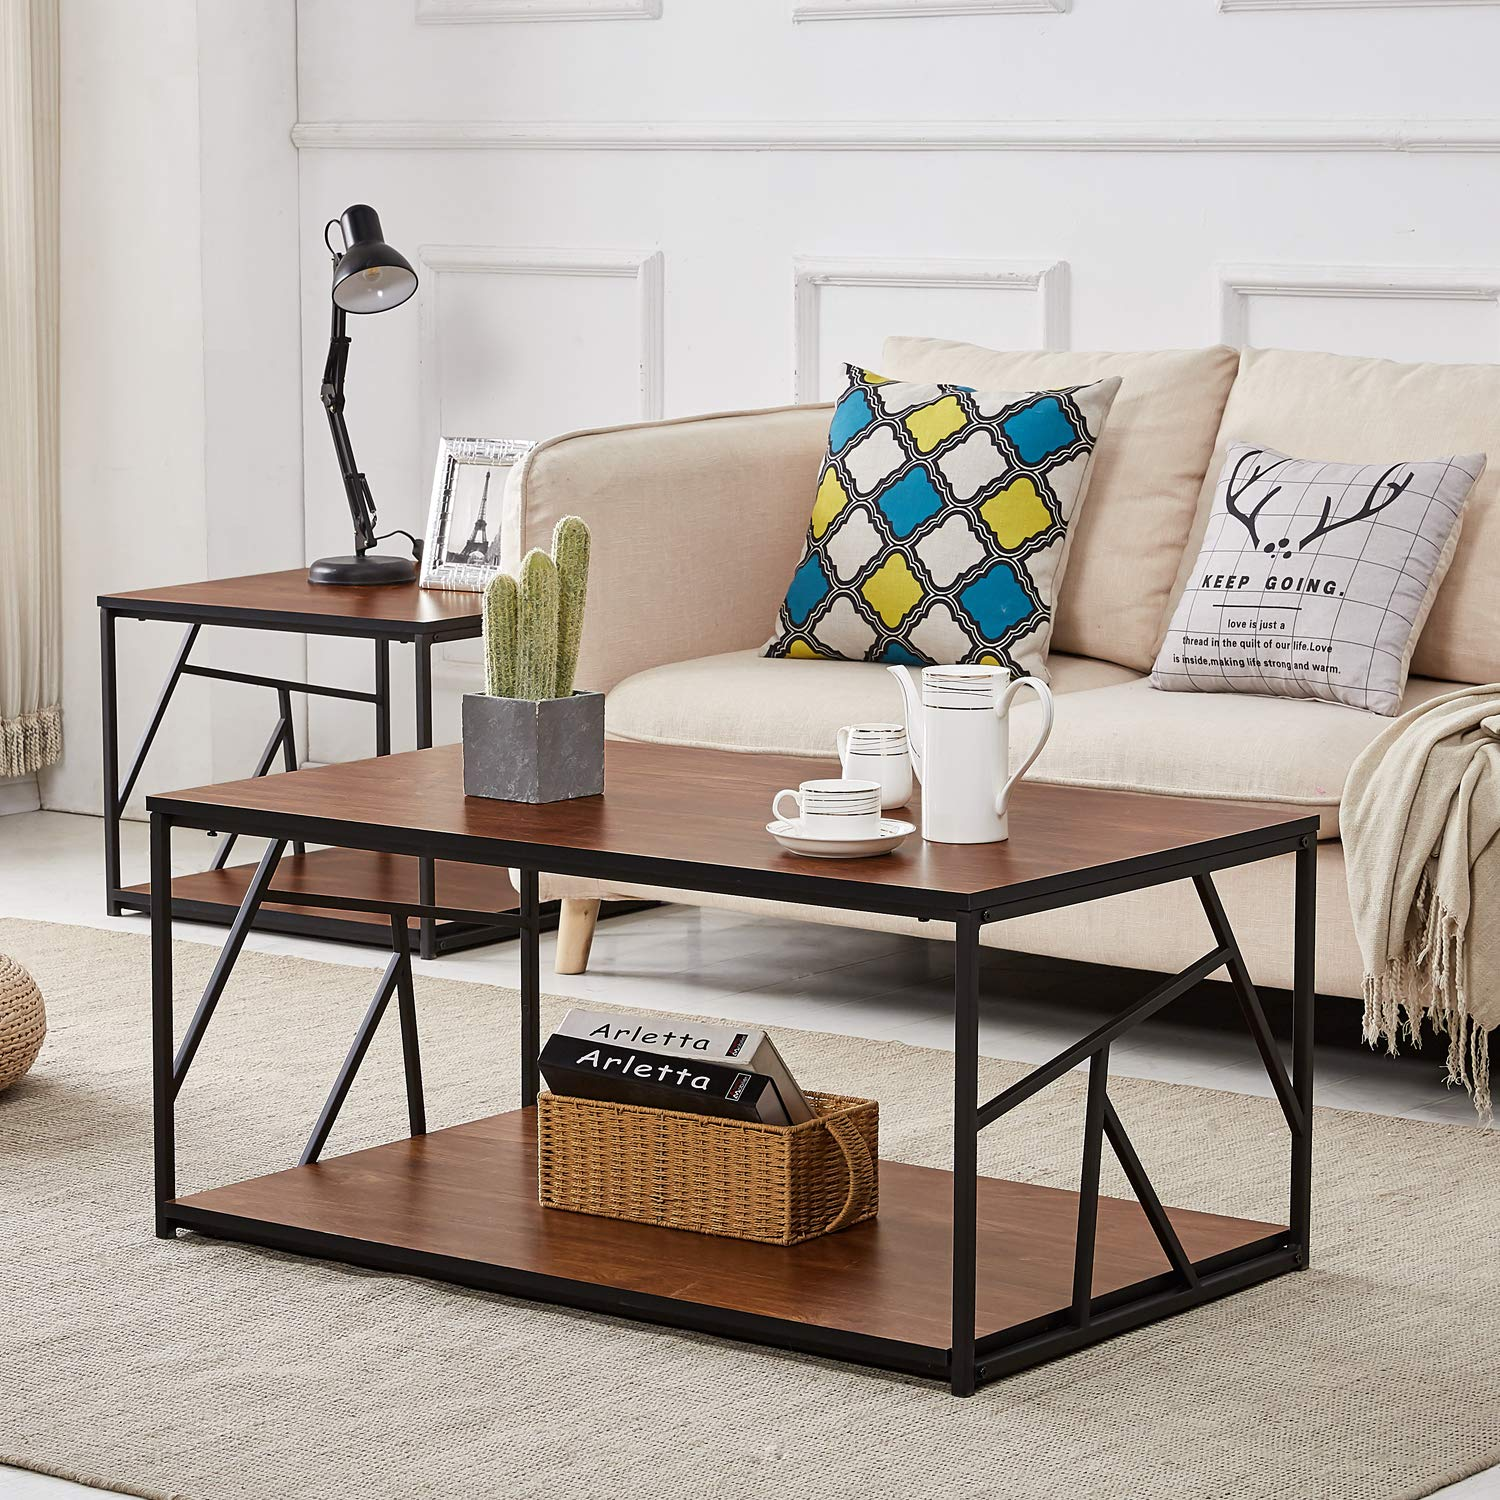 Modern Coffee Table With Storage Modern Coffee Tea Table Wooden Side Table With Storage Black Metal